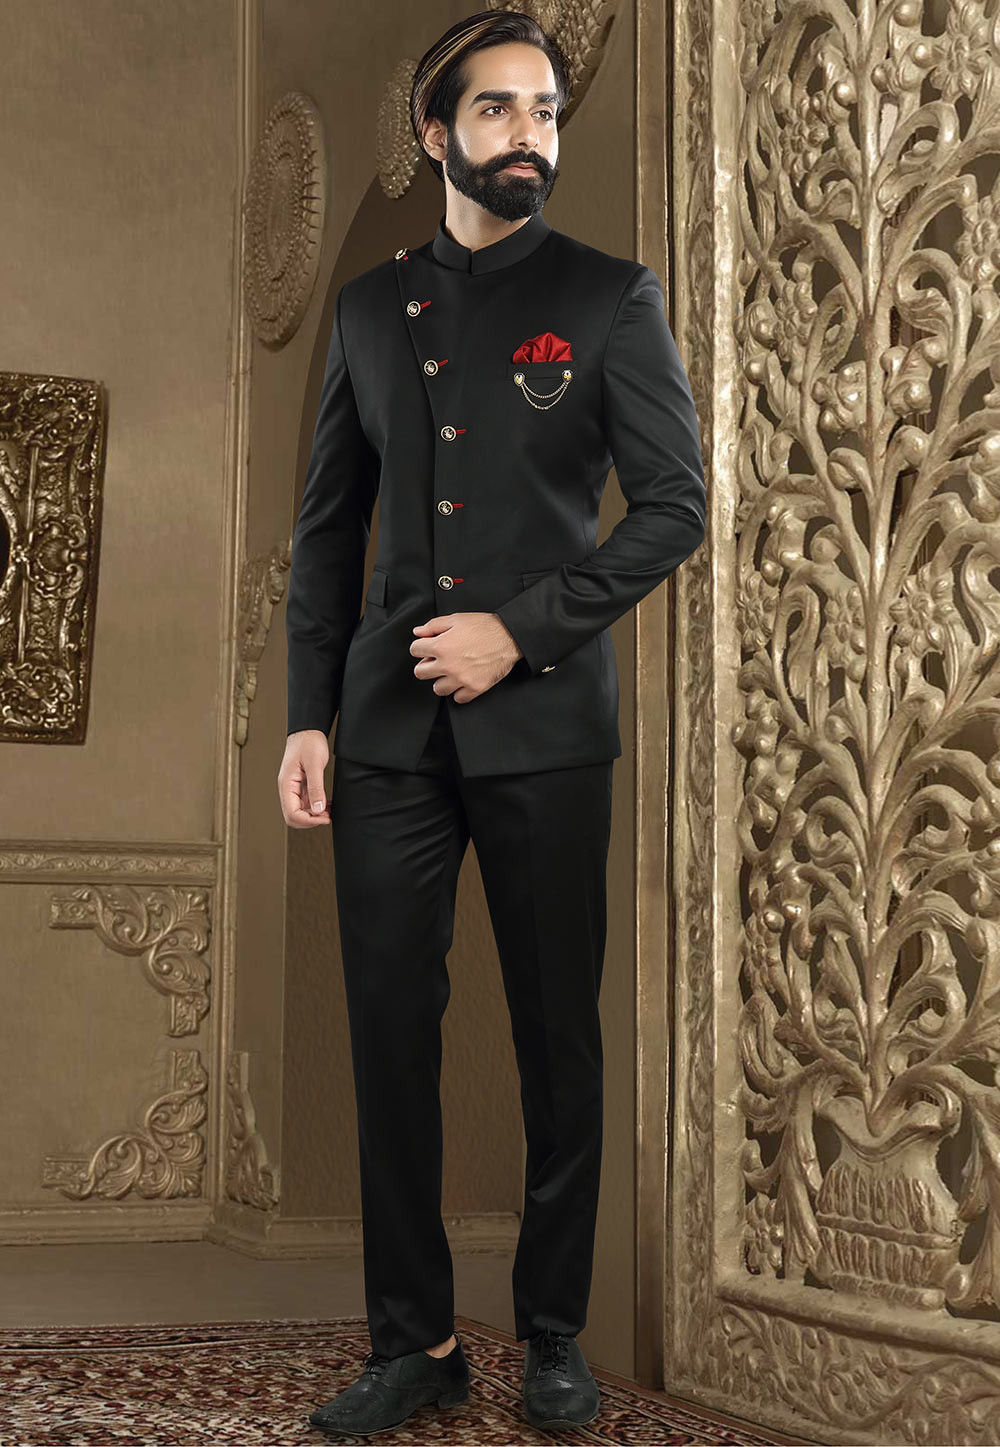 Solid Color Terry Rayon Jodhpuri Suit In Black Mhg970